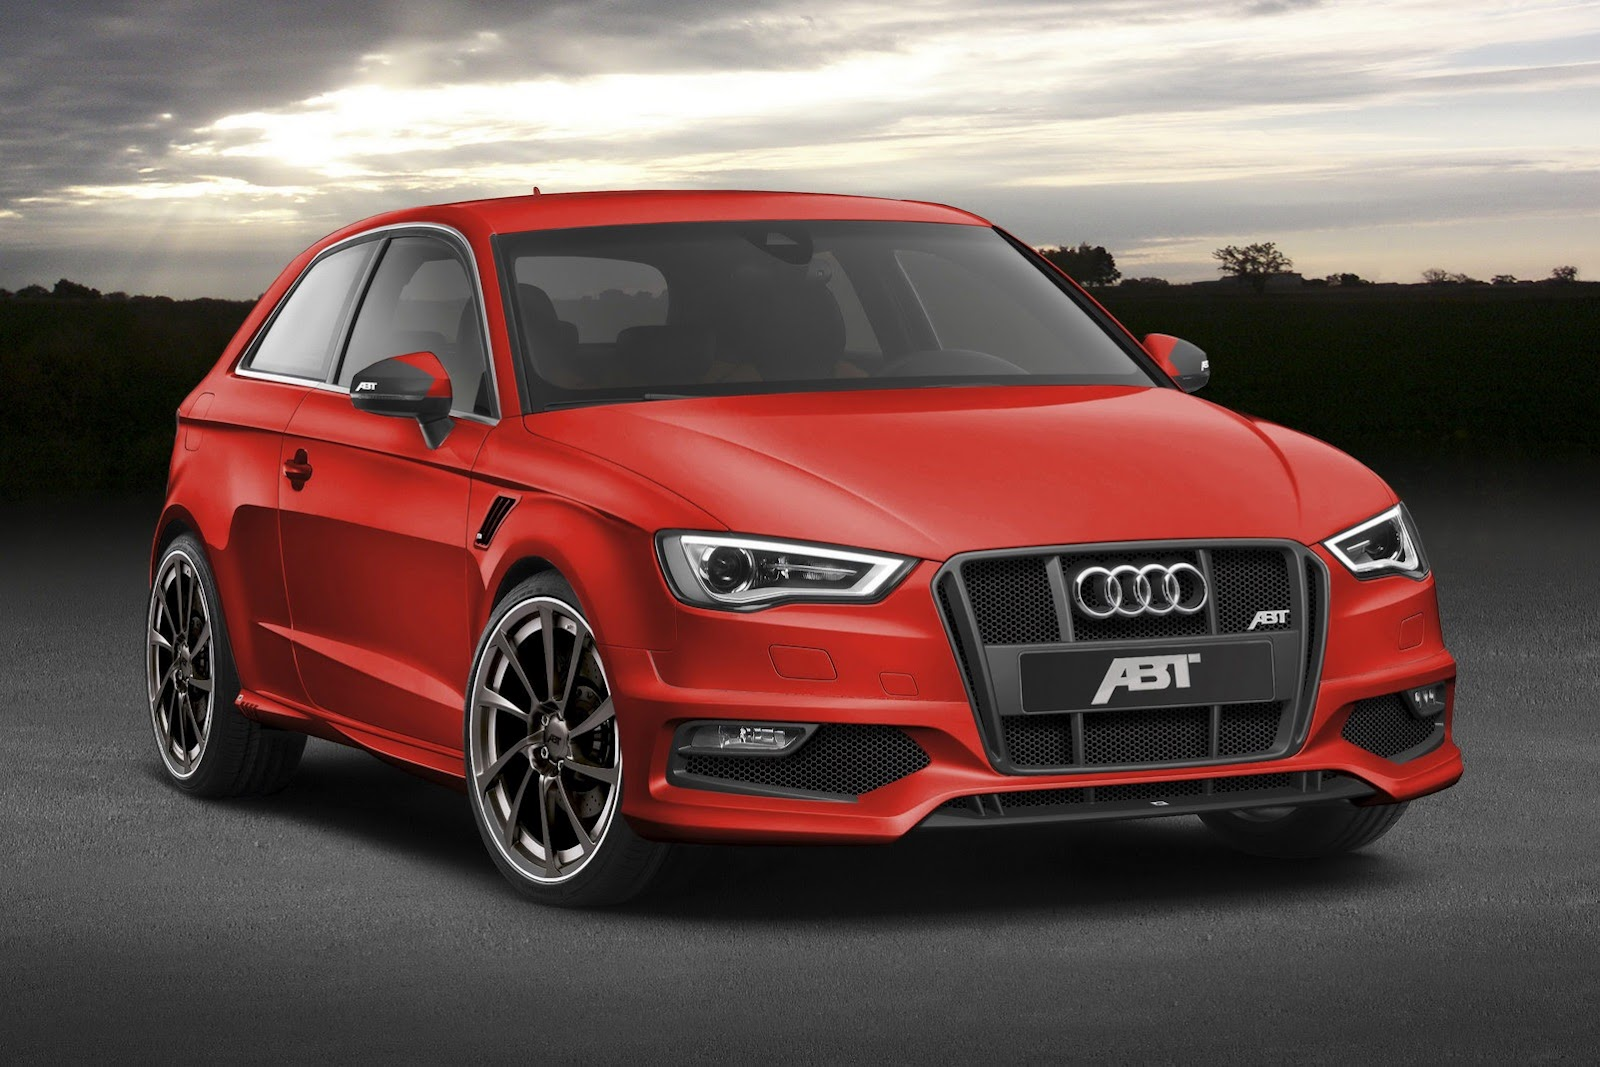 ABT Sportsline previews new Audi A3 tuning kit